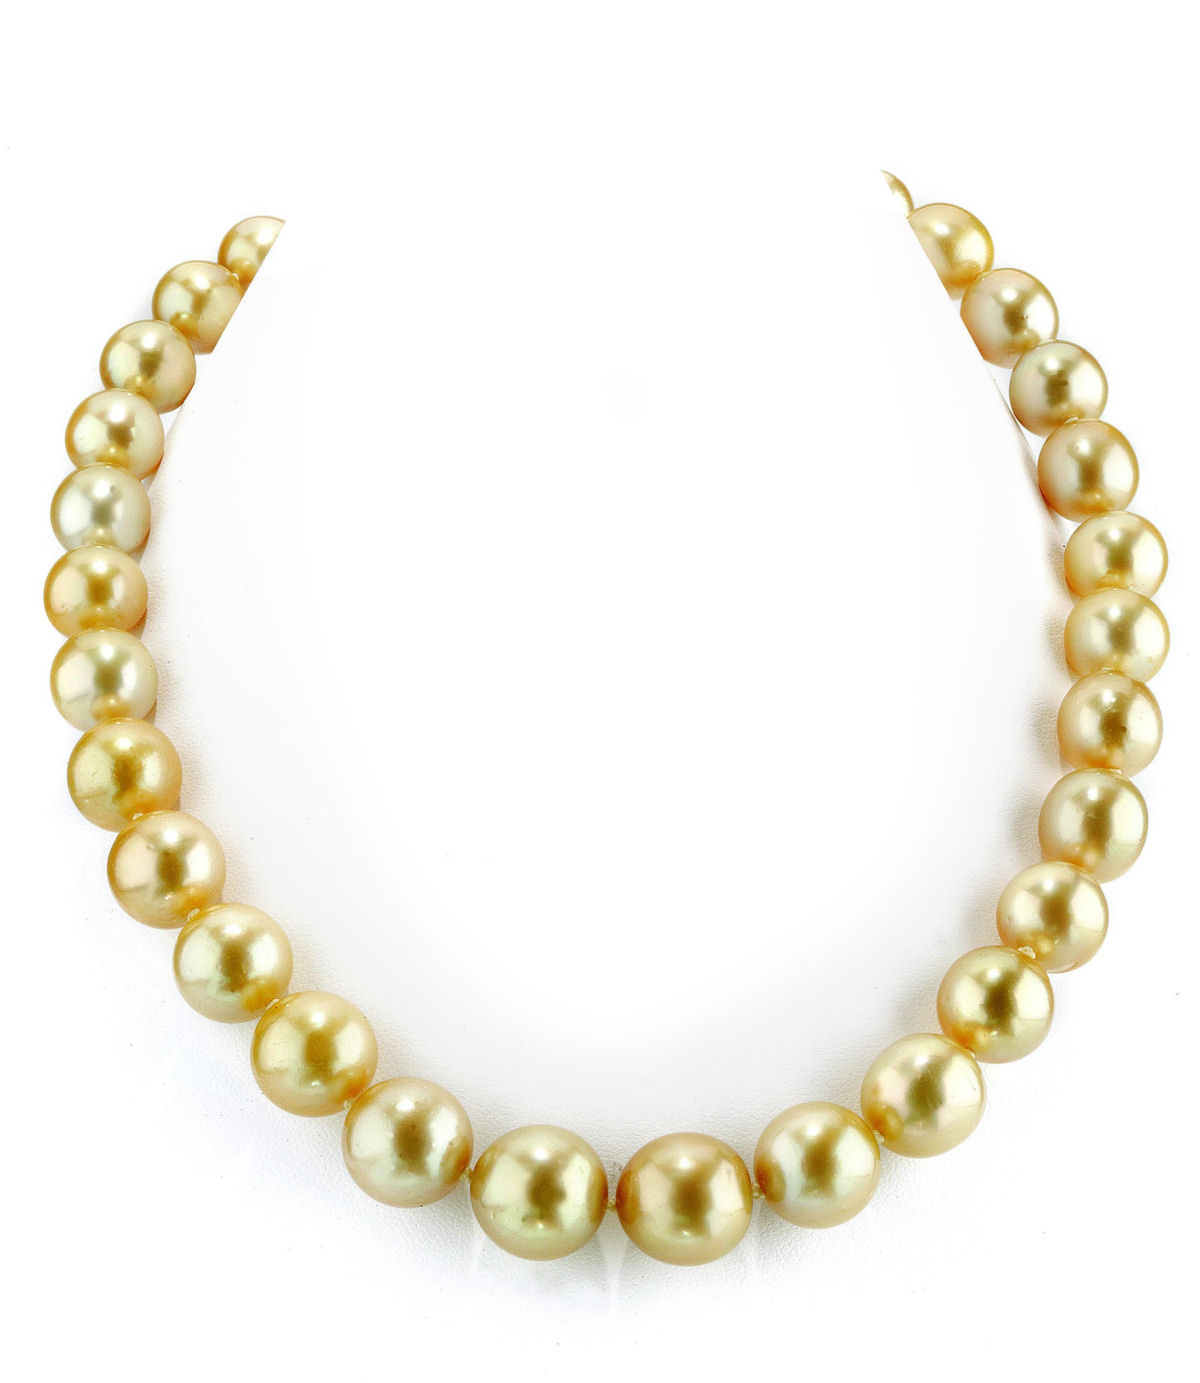 11-14mm Golden South Sea Pearl Necklace